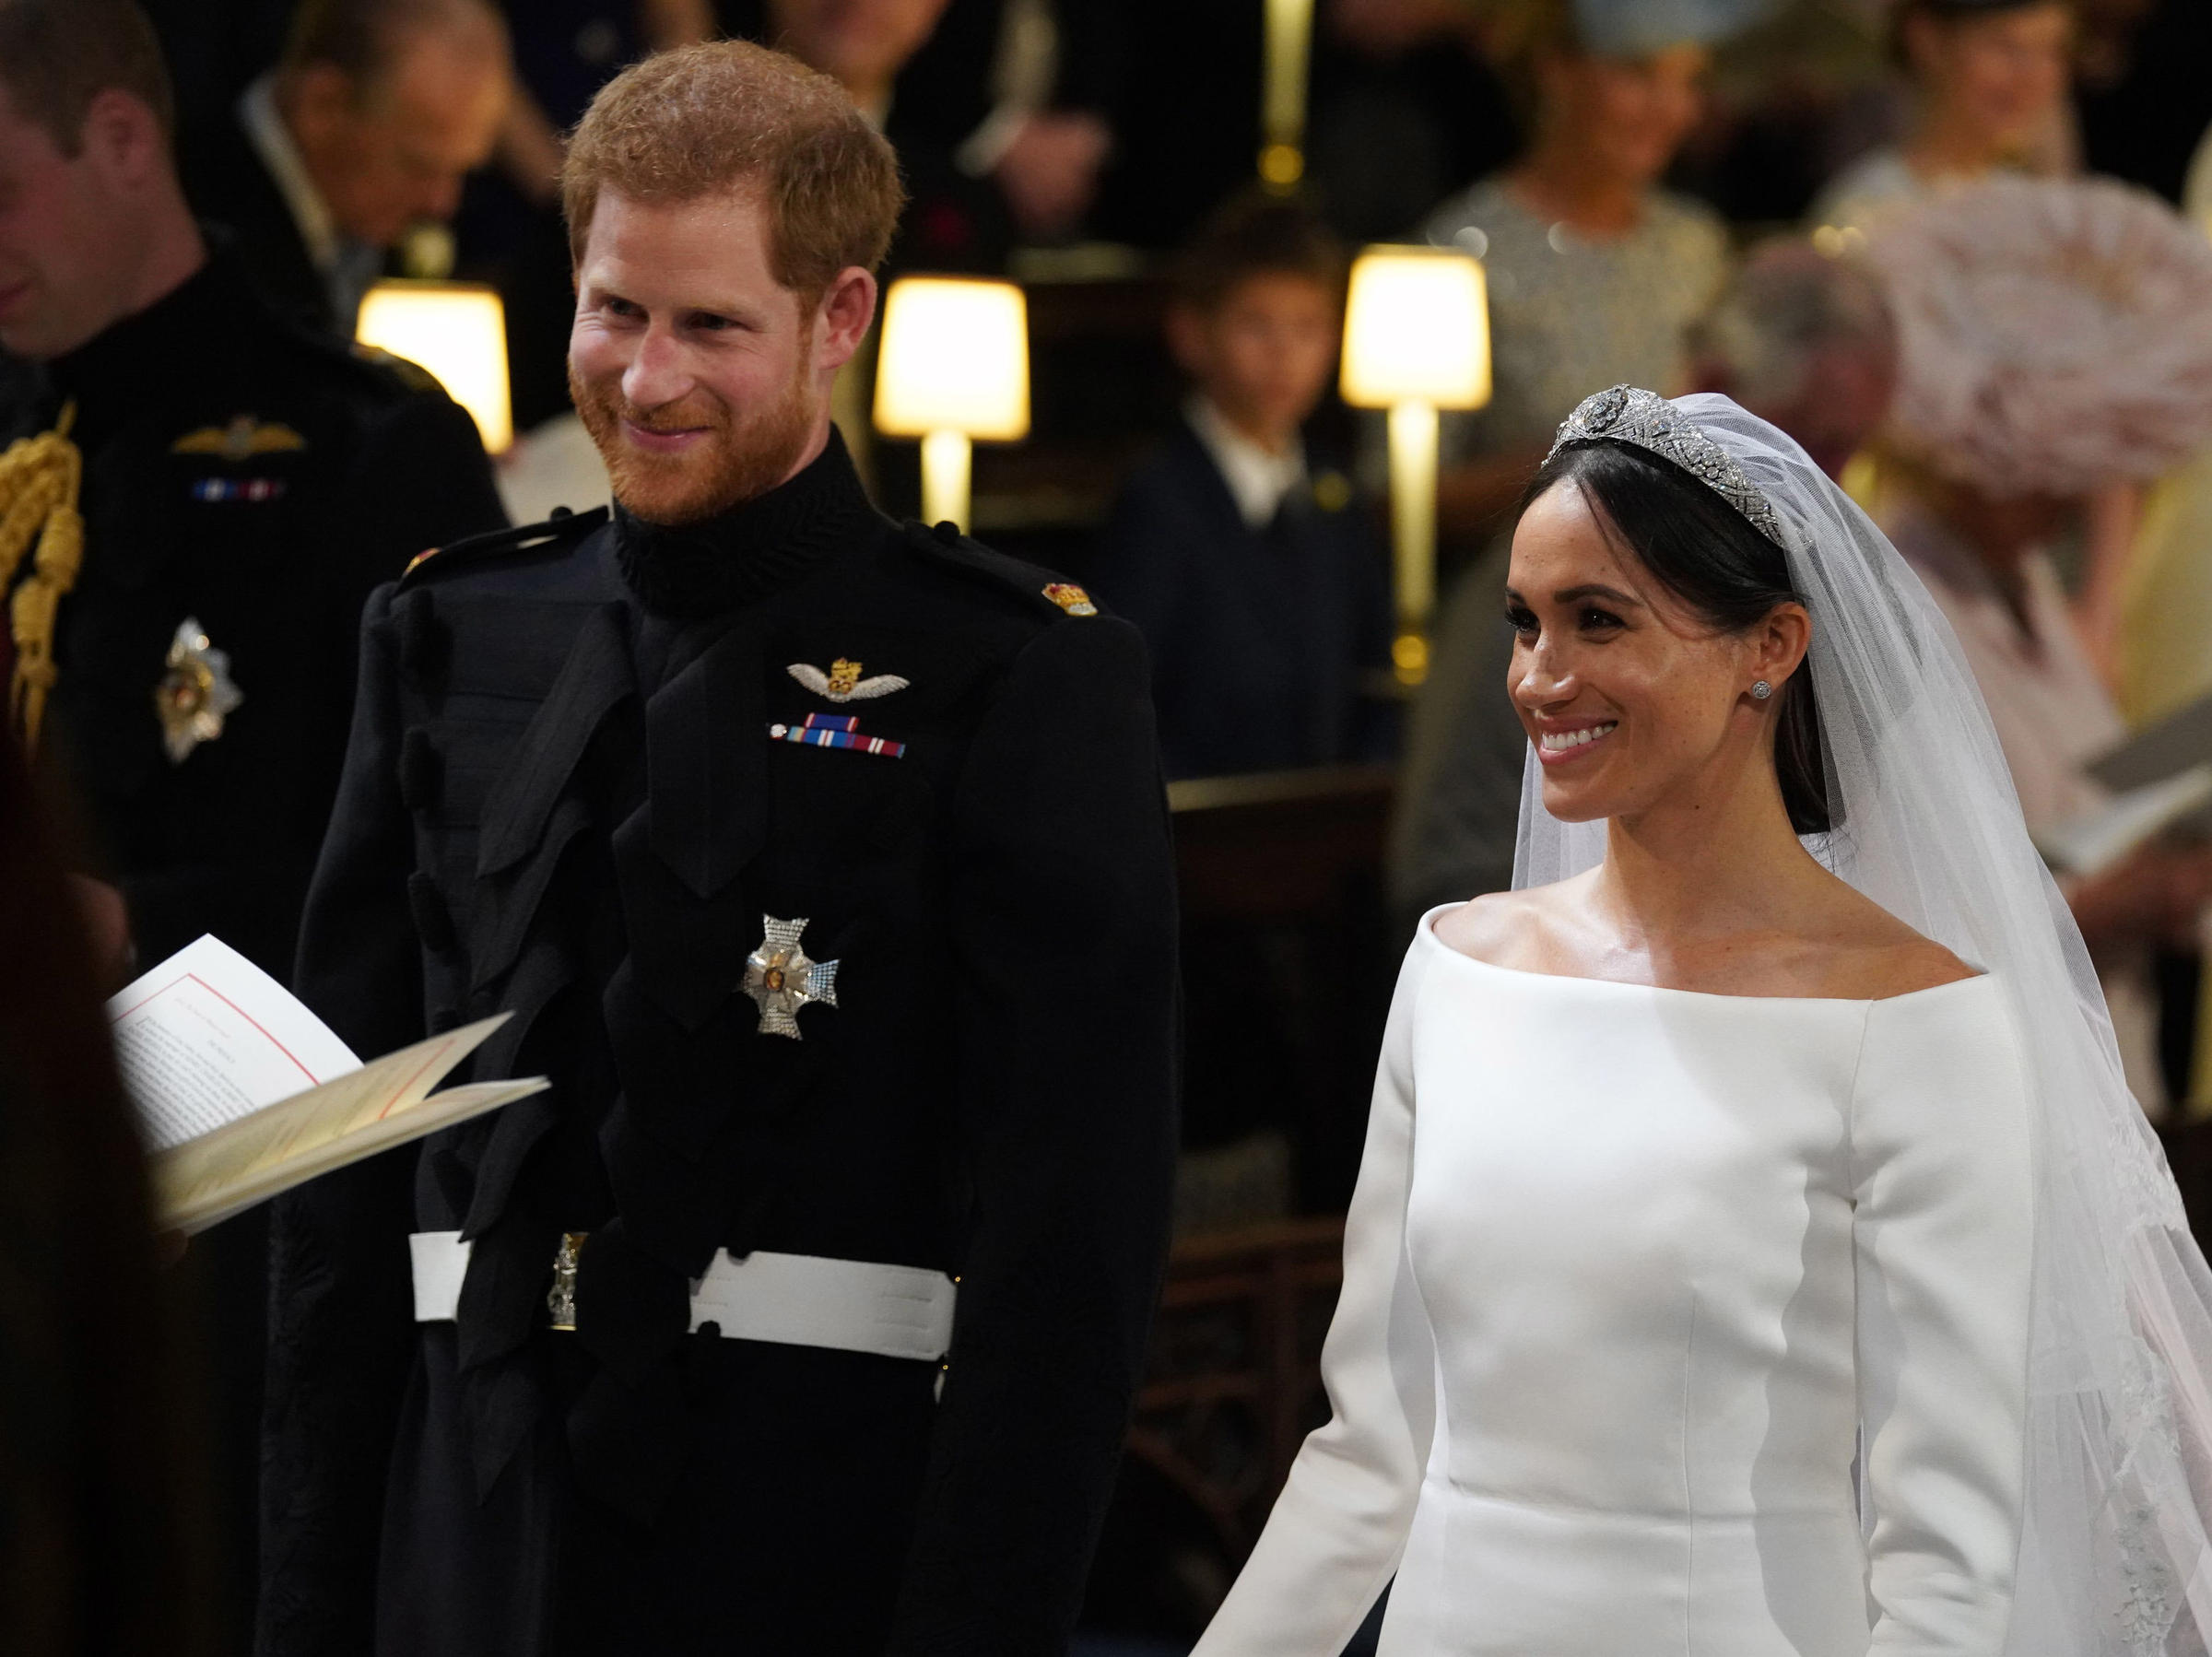 watch the royal wedding of prince harry and meghan markle wmot https www wmot org post watch royal wedding prince harry and meghan markle